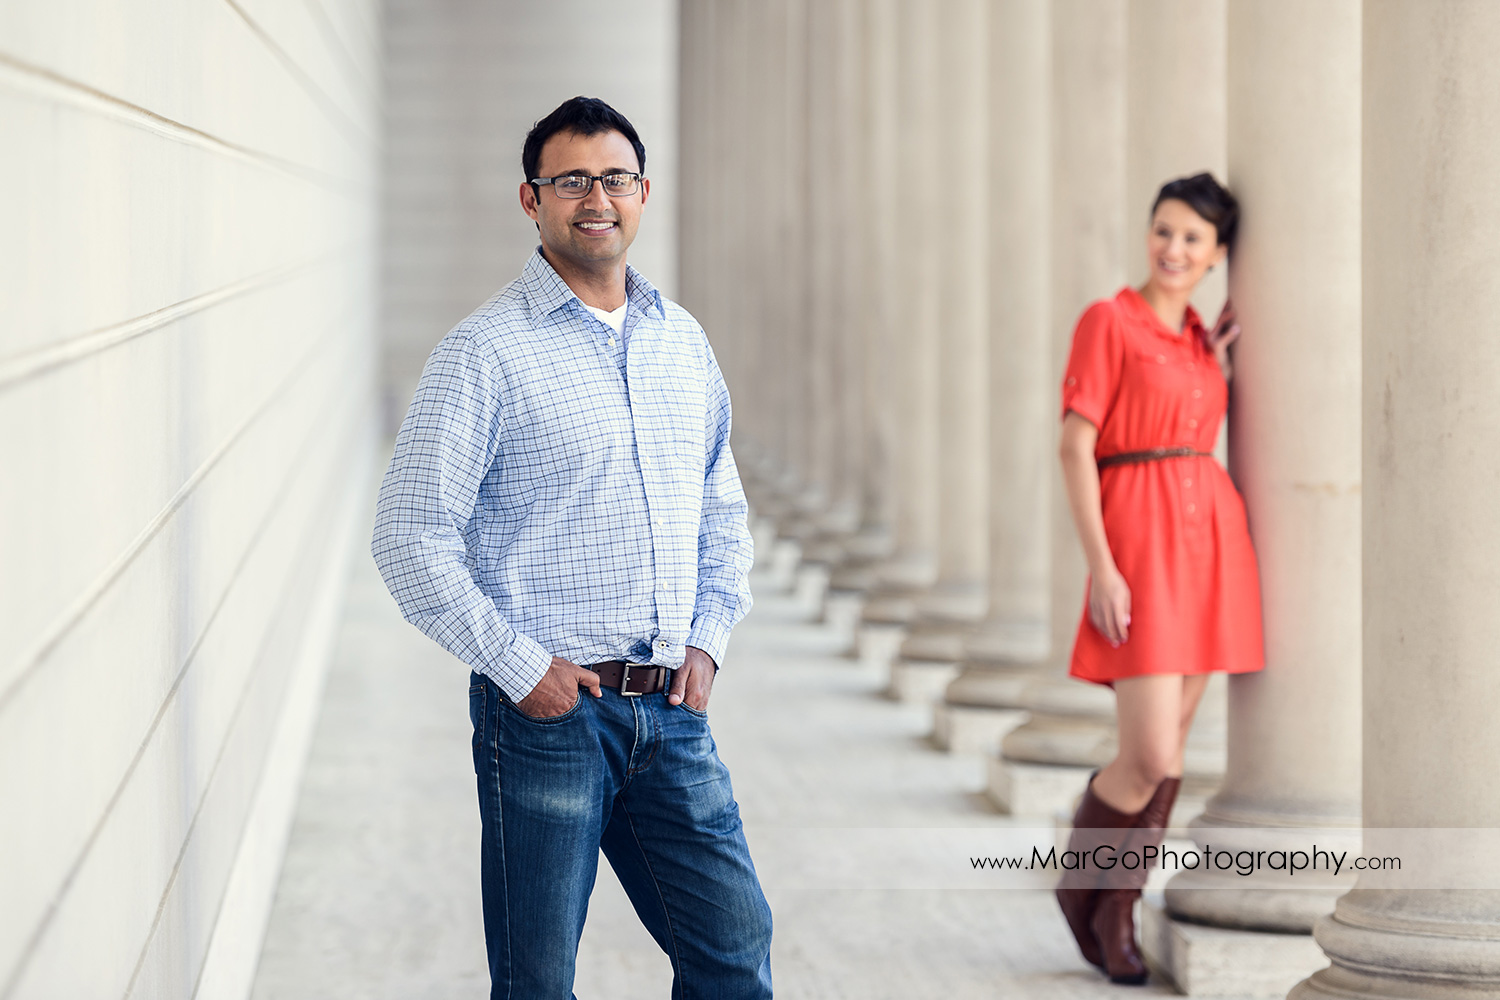 man in blue shirt standing in front of woman in red dress between white wall and columns during engagement session at San Francisco Legion of Honor